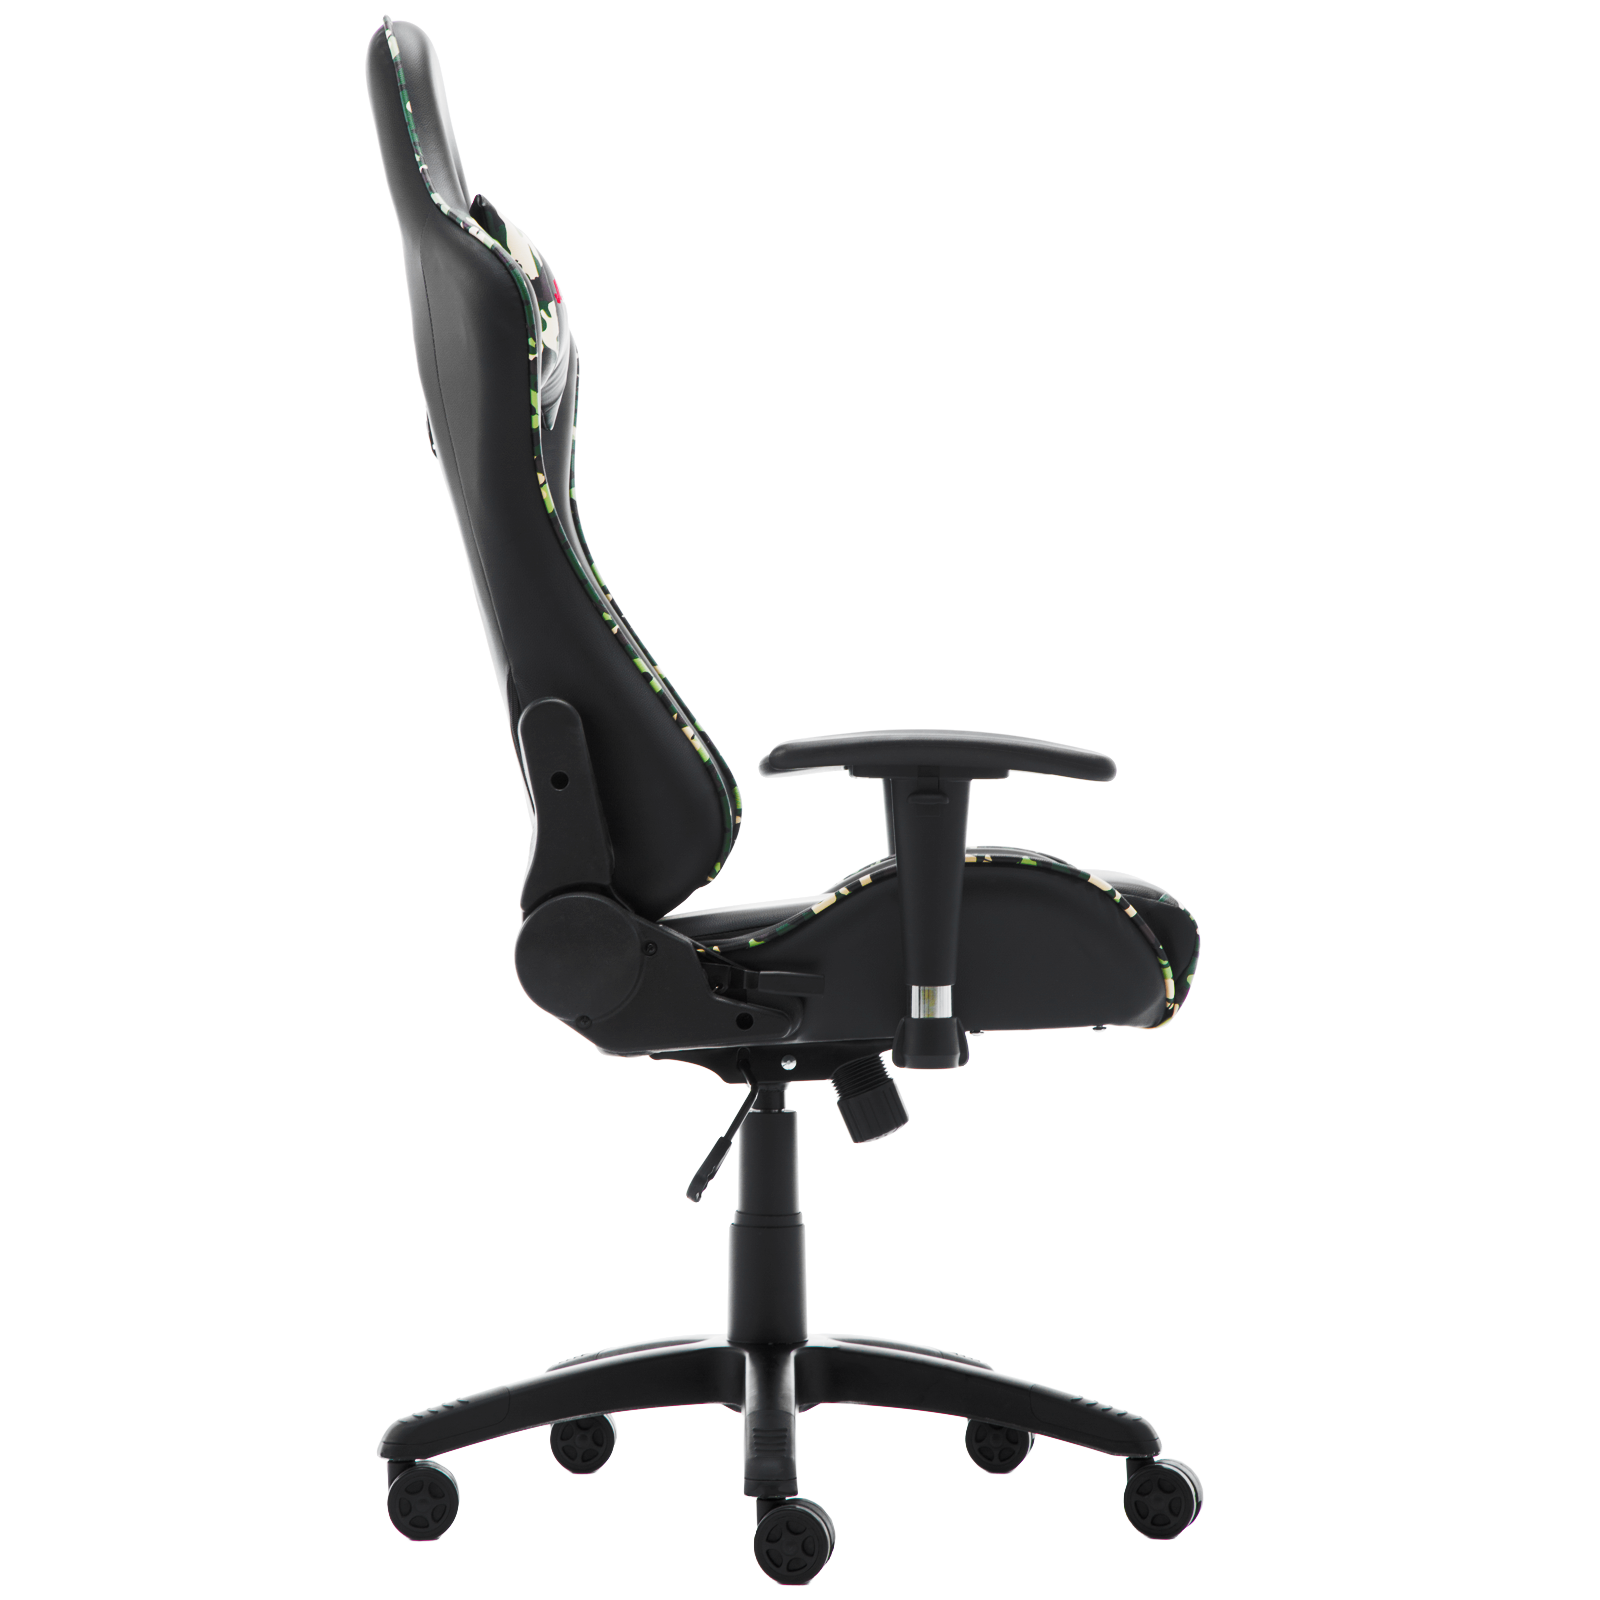 Camo Lift Chair: Camouflage Gaming Chair Swivel Office Chair Racing Rocker